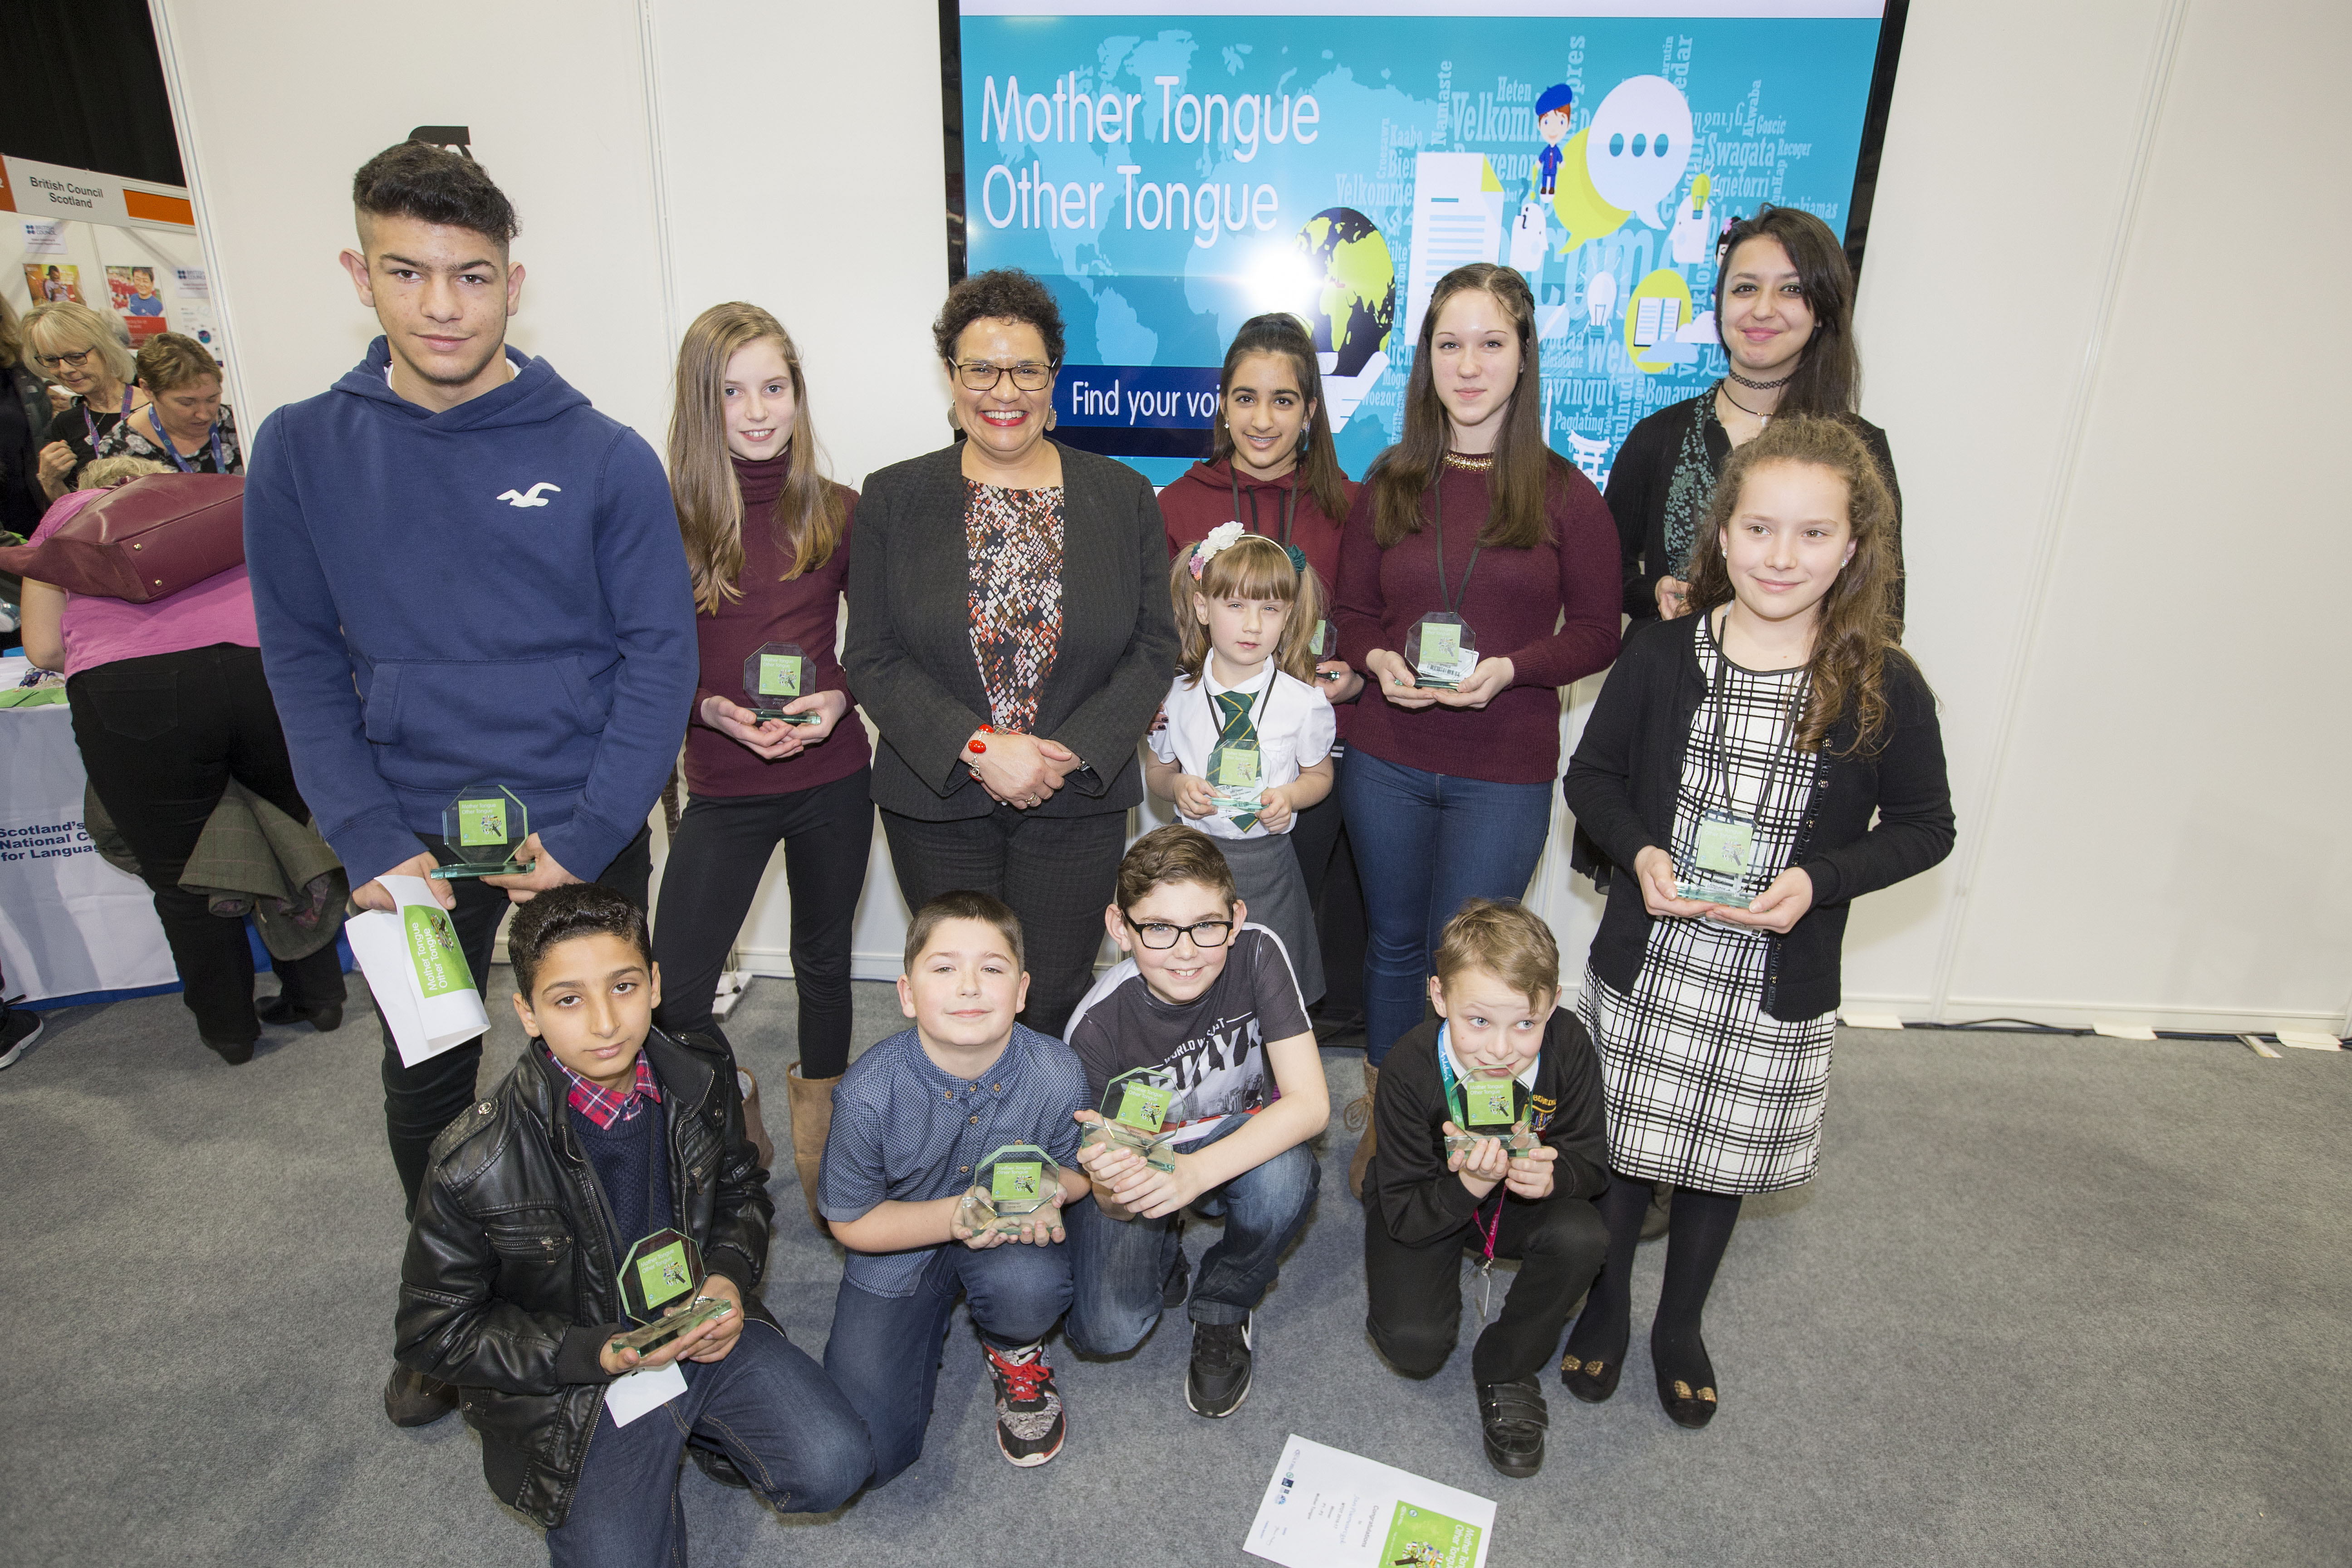 MTOT 2016-17 winners with Jackie Kay